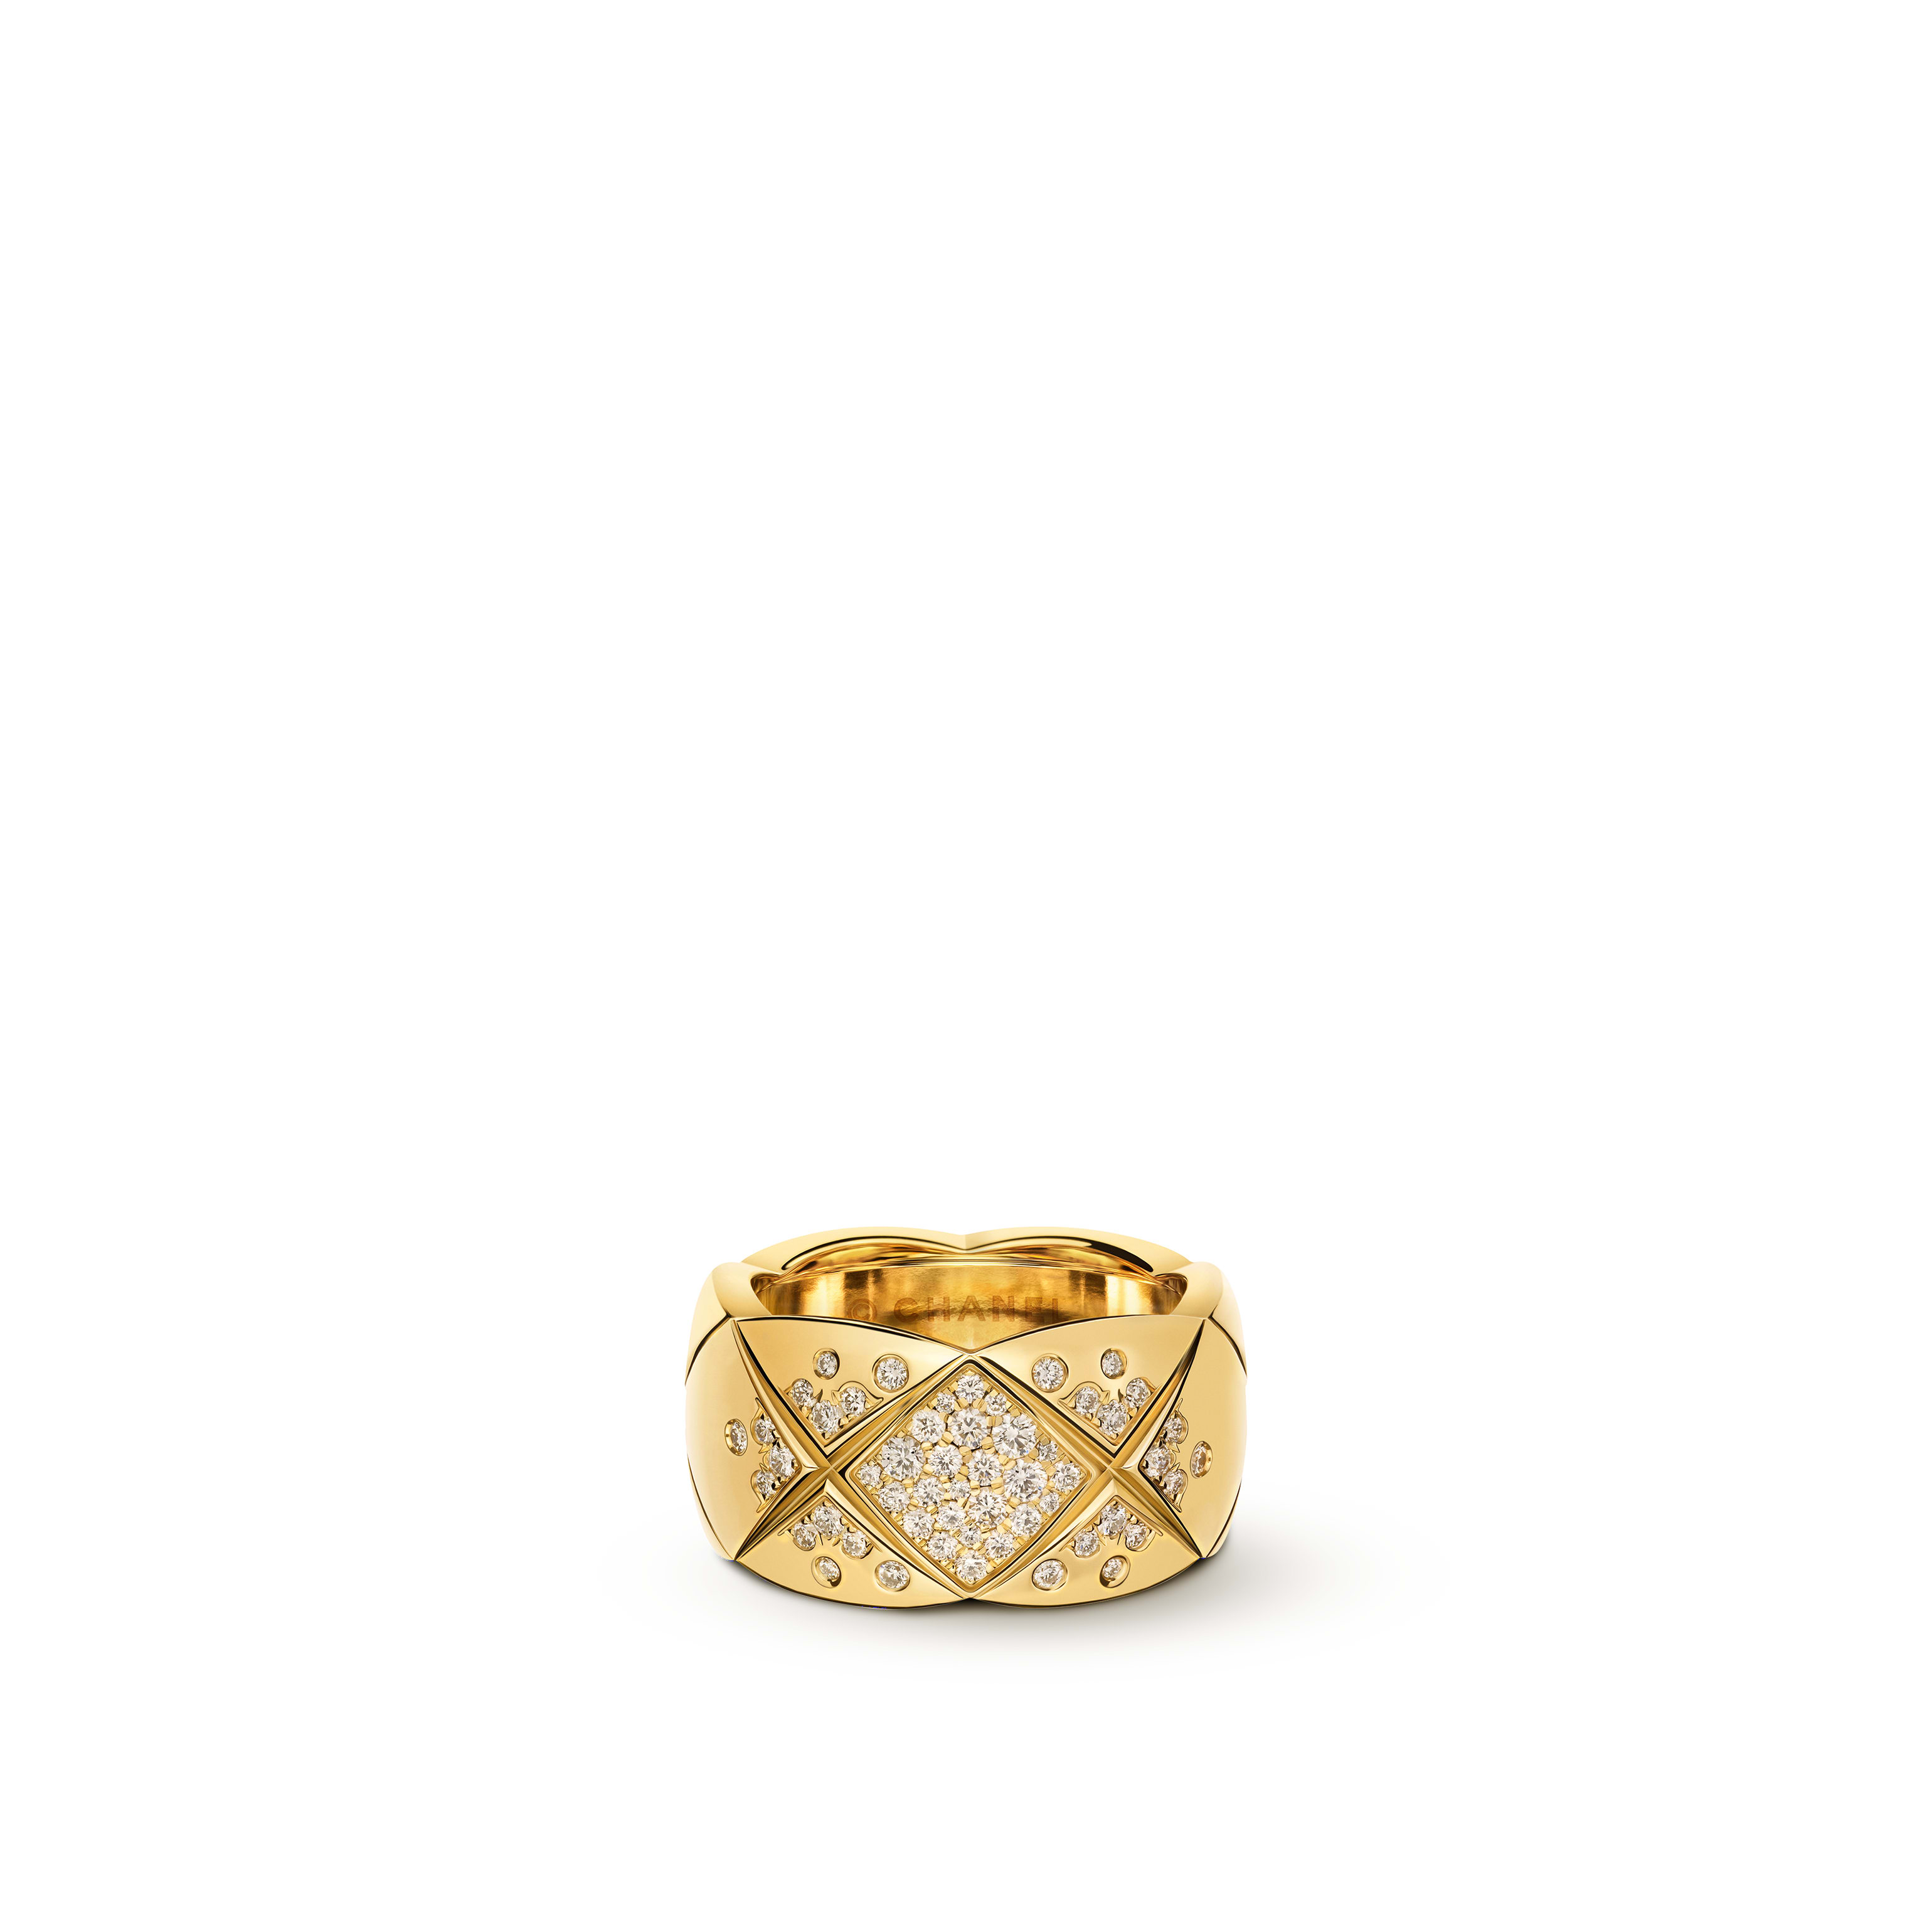 Coco Crush ring - Quilted motif, large version, 18K yellow gold, diamonds - CHANEL - Default view - see standard sized version